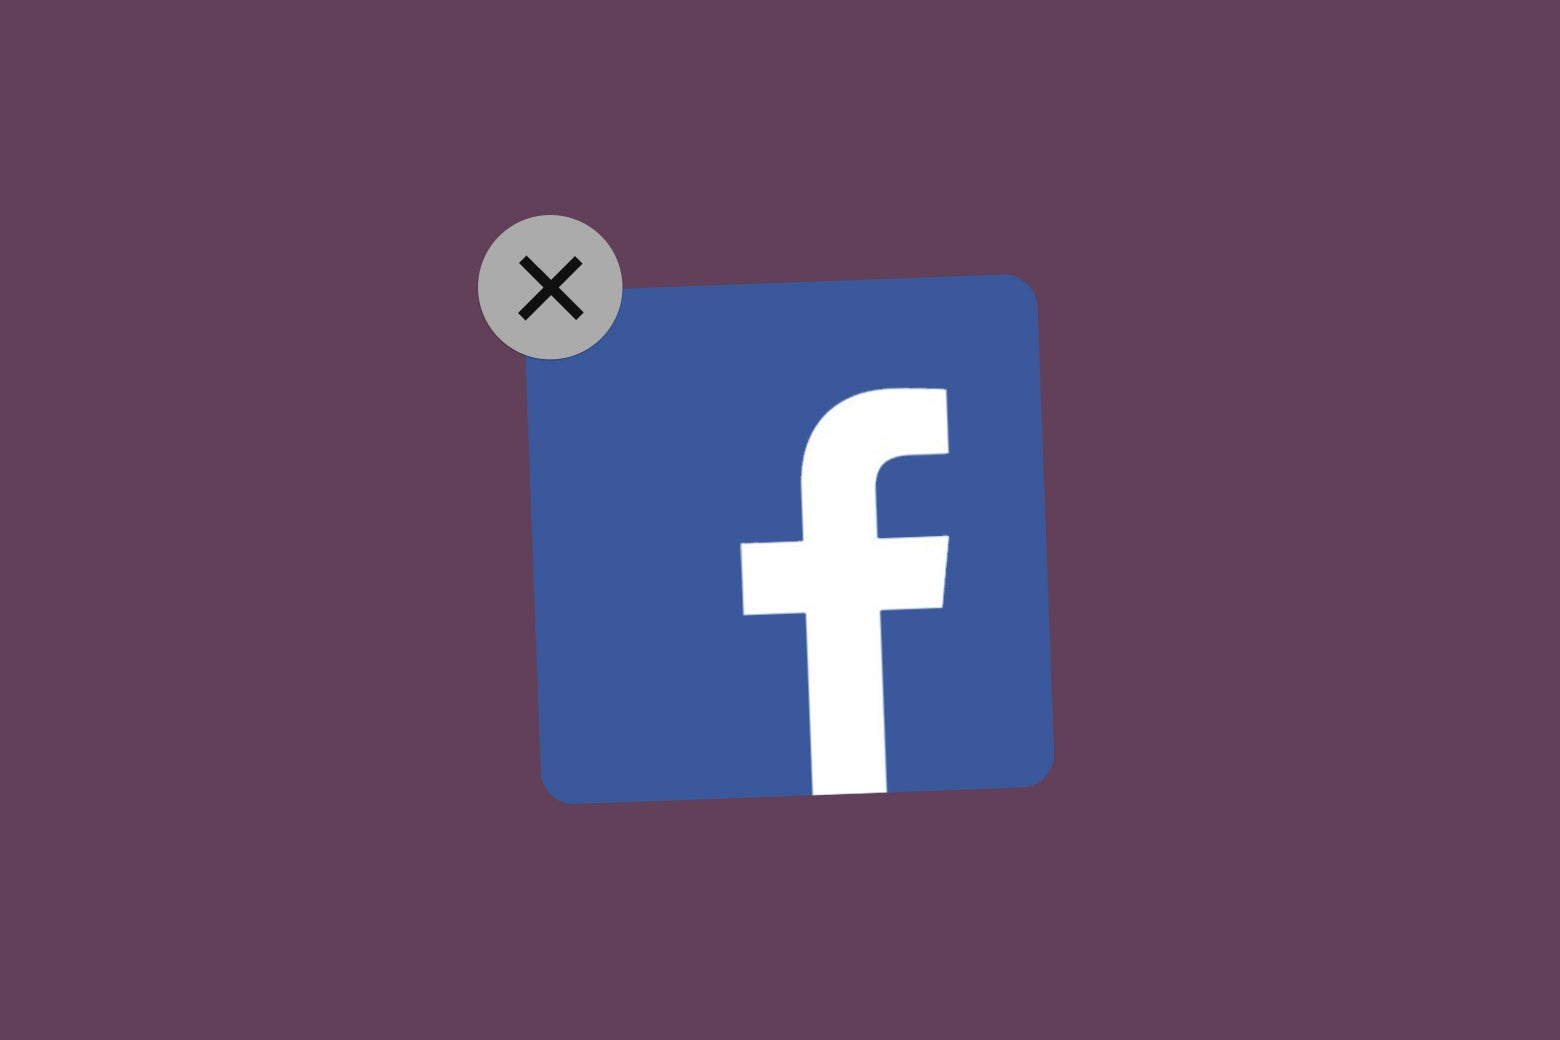 The Facebook app, ready to be deleted.